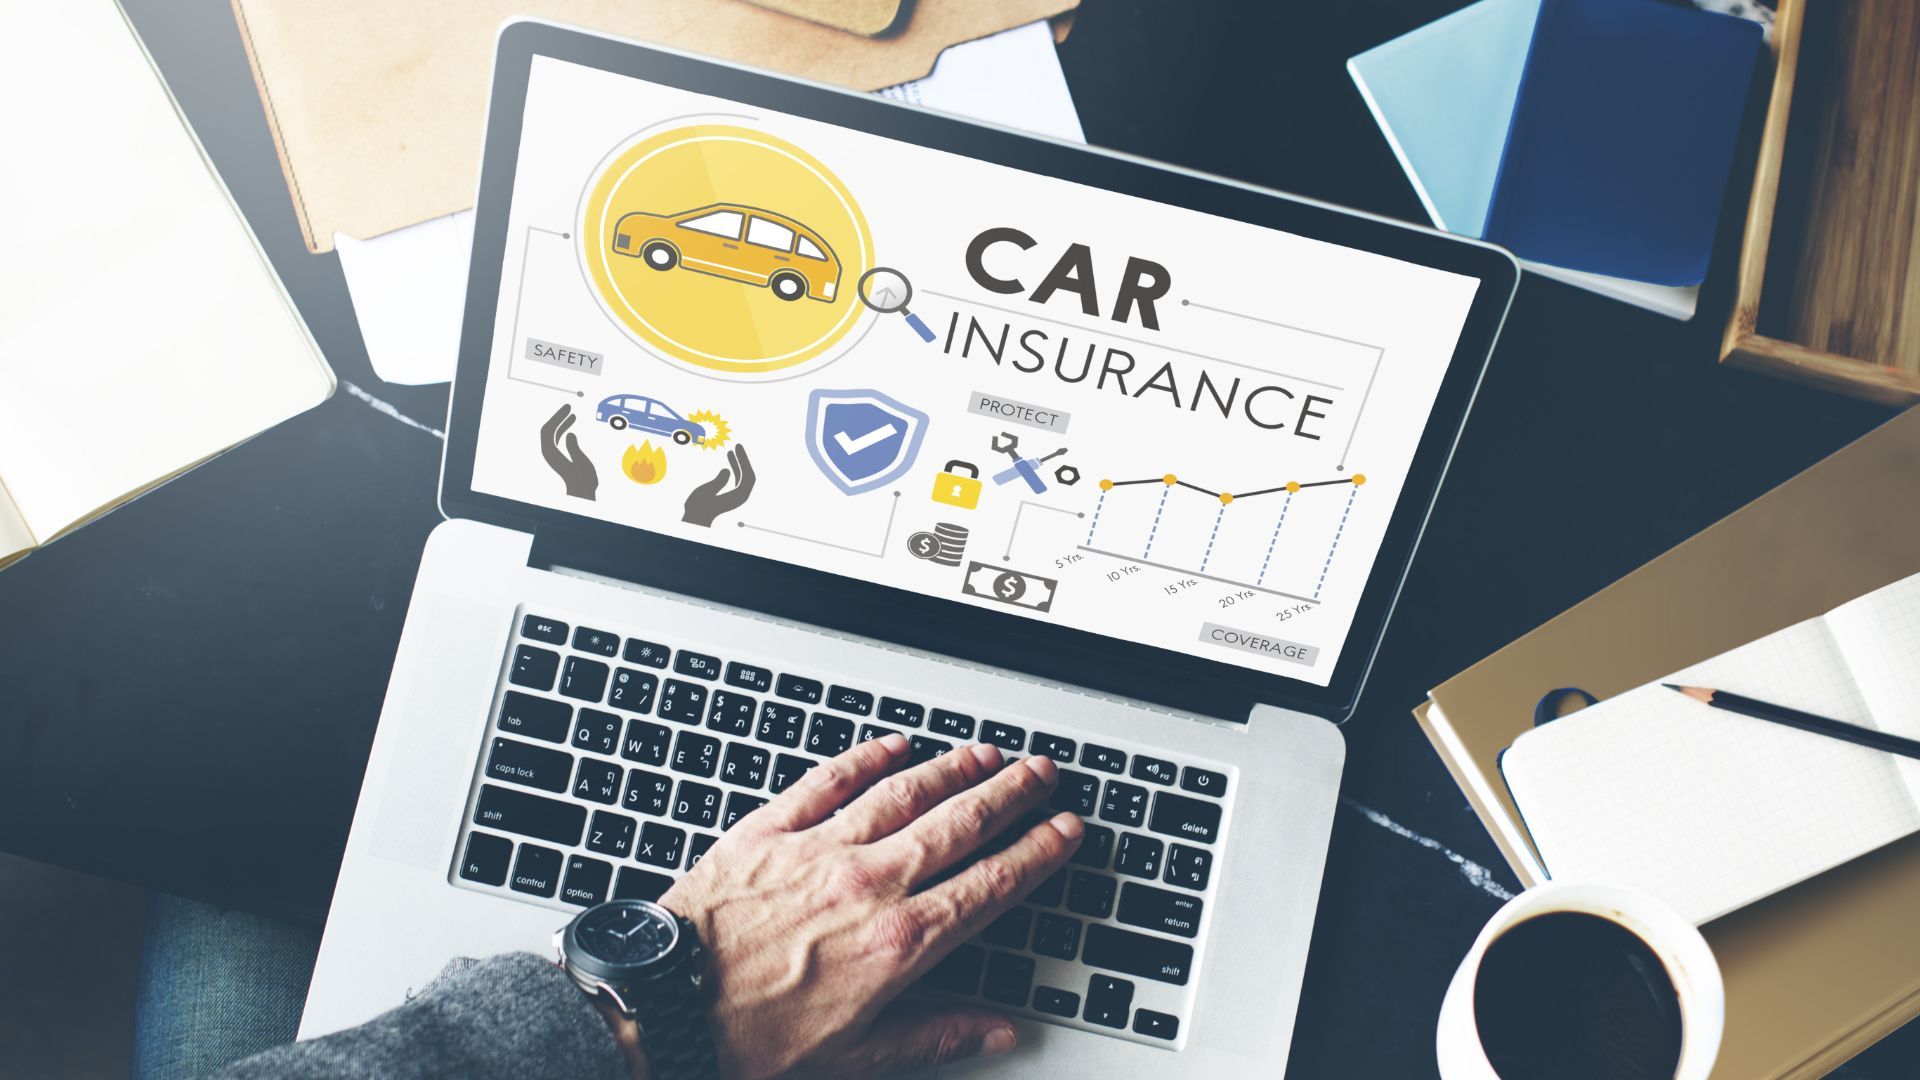 Saving car insurance renewal